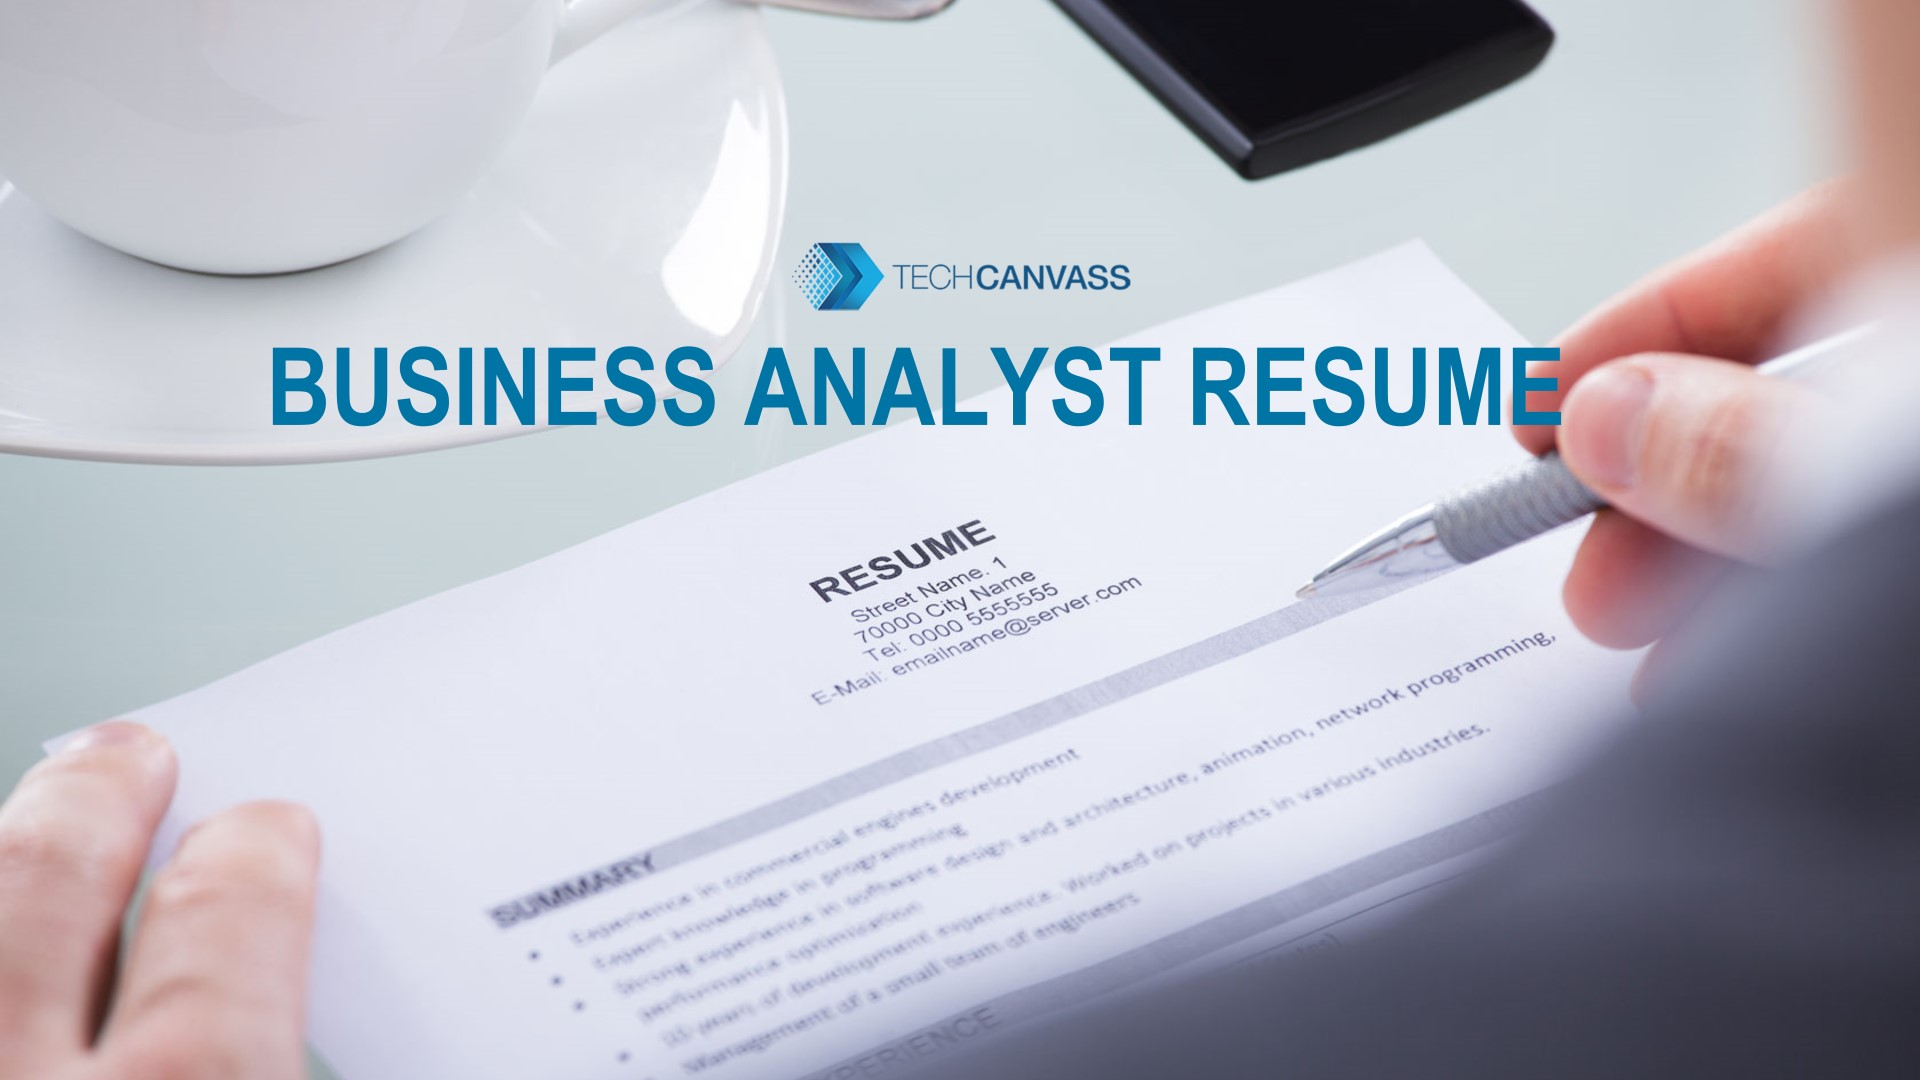 How Do I Need To Prepare A Business Analyst Resume With Testing Experience Business Analyst